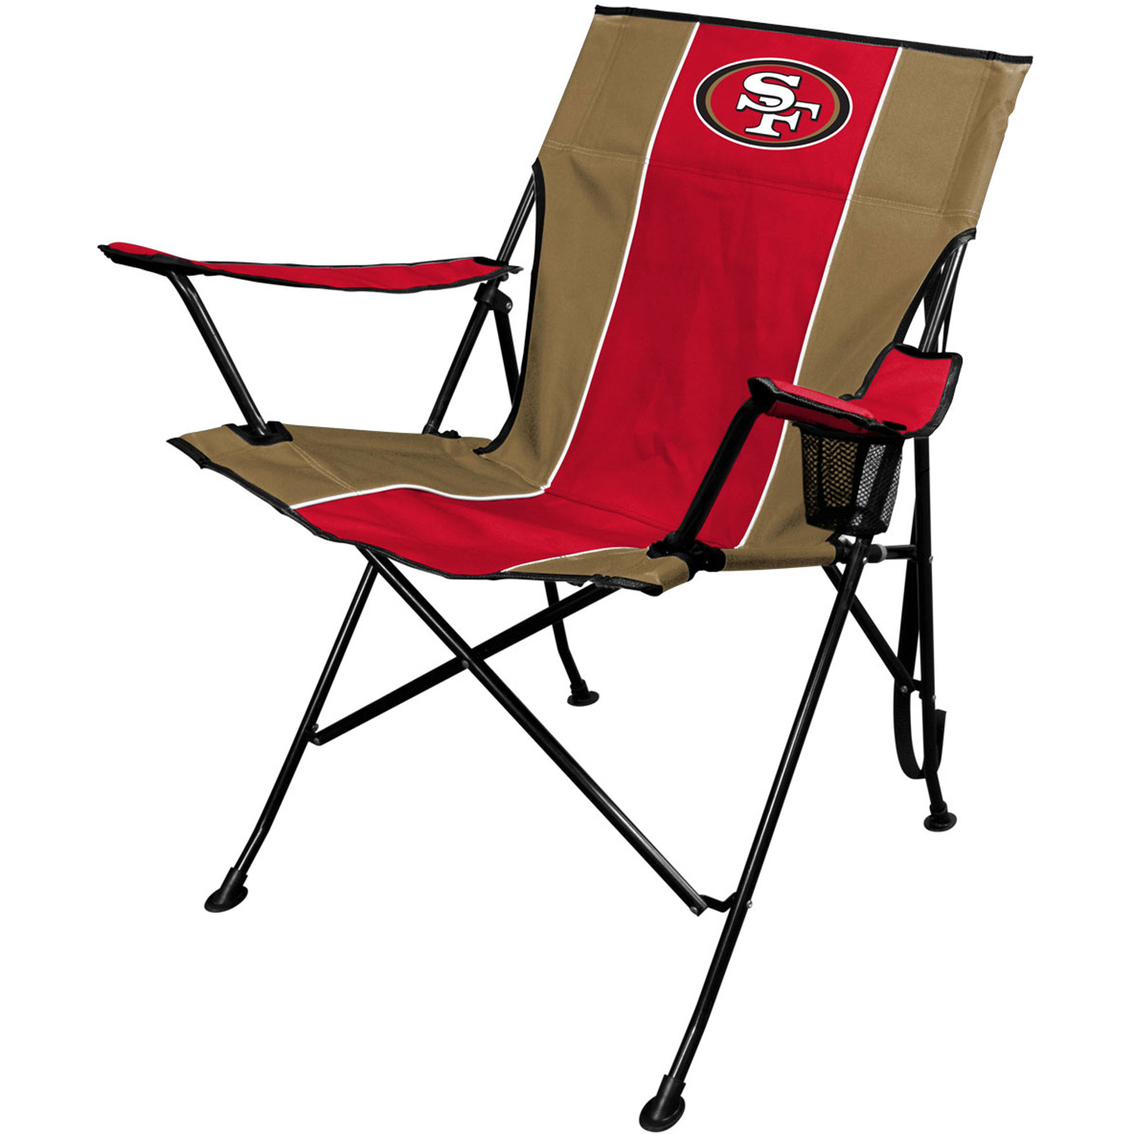 49ers camping chair low back chairs jarden sports licensing nfl san francisco tailgate